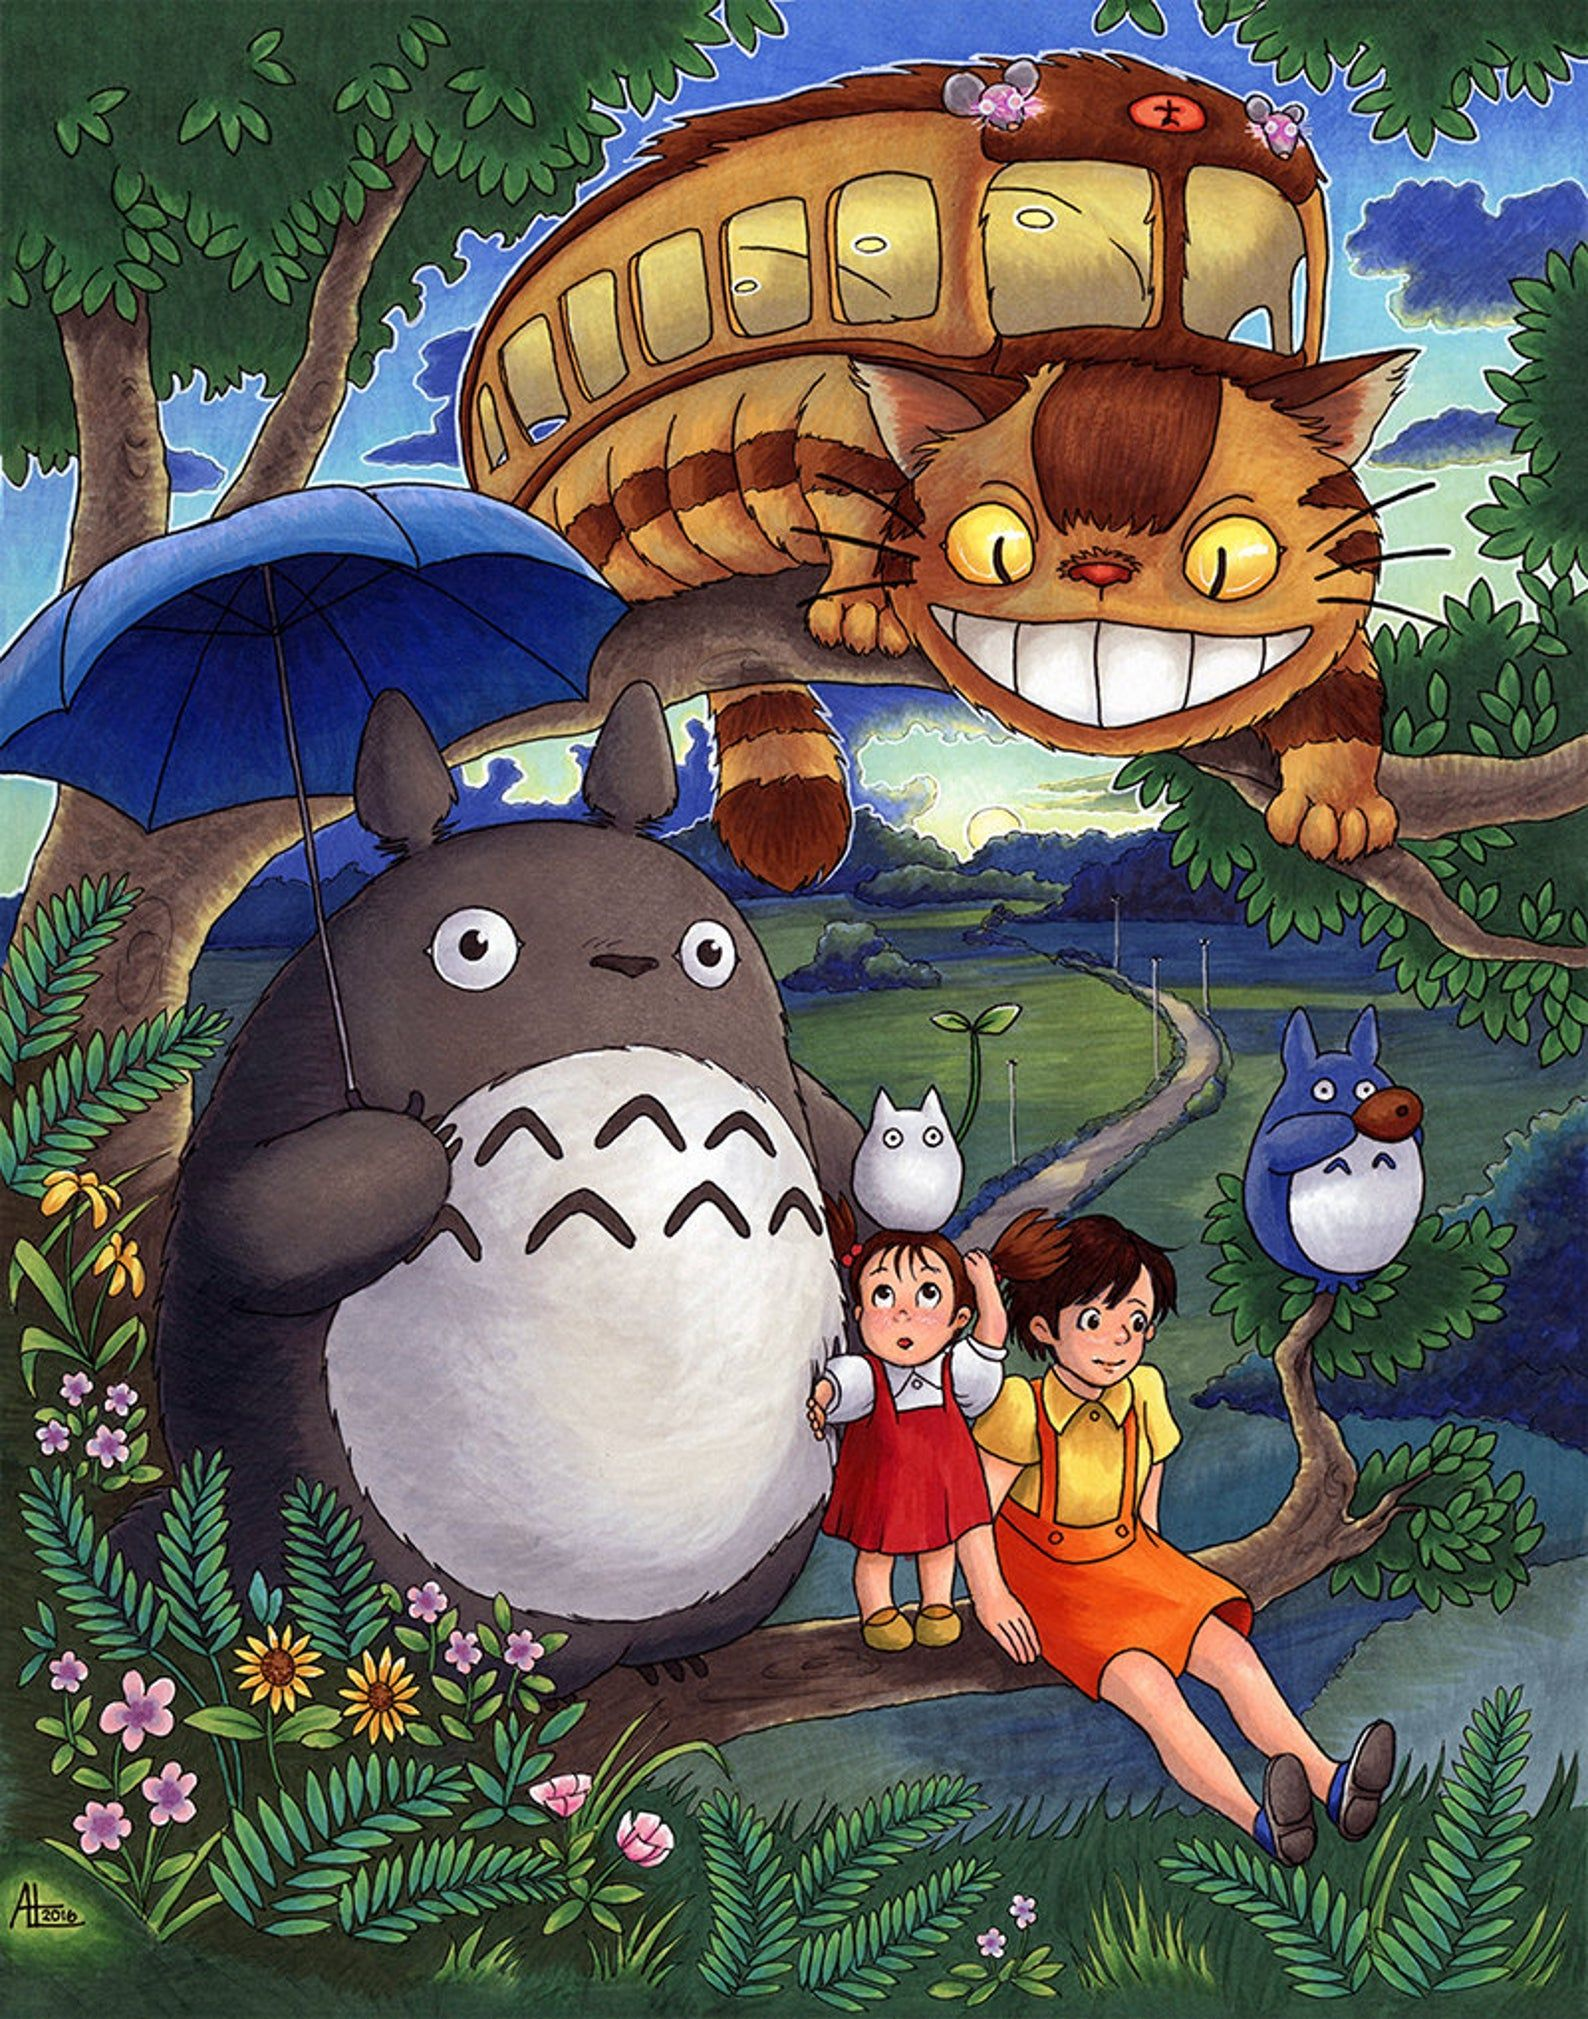 Totoro Art Print 11x14 My Neighbor Totoro Illustration by